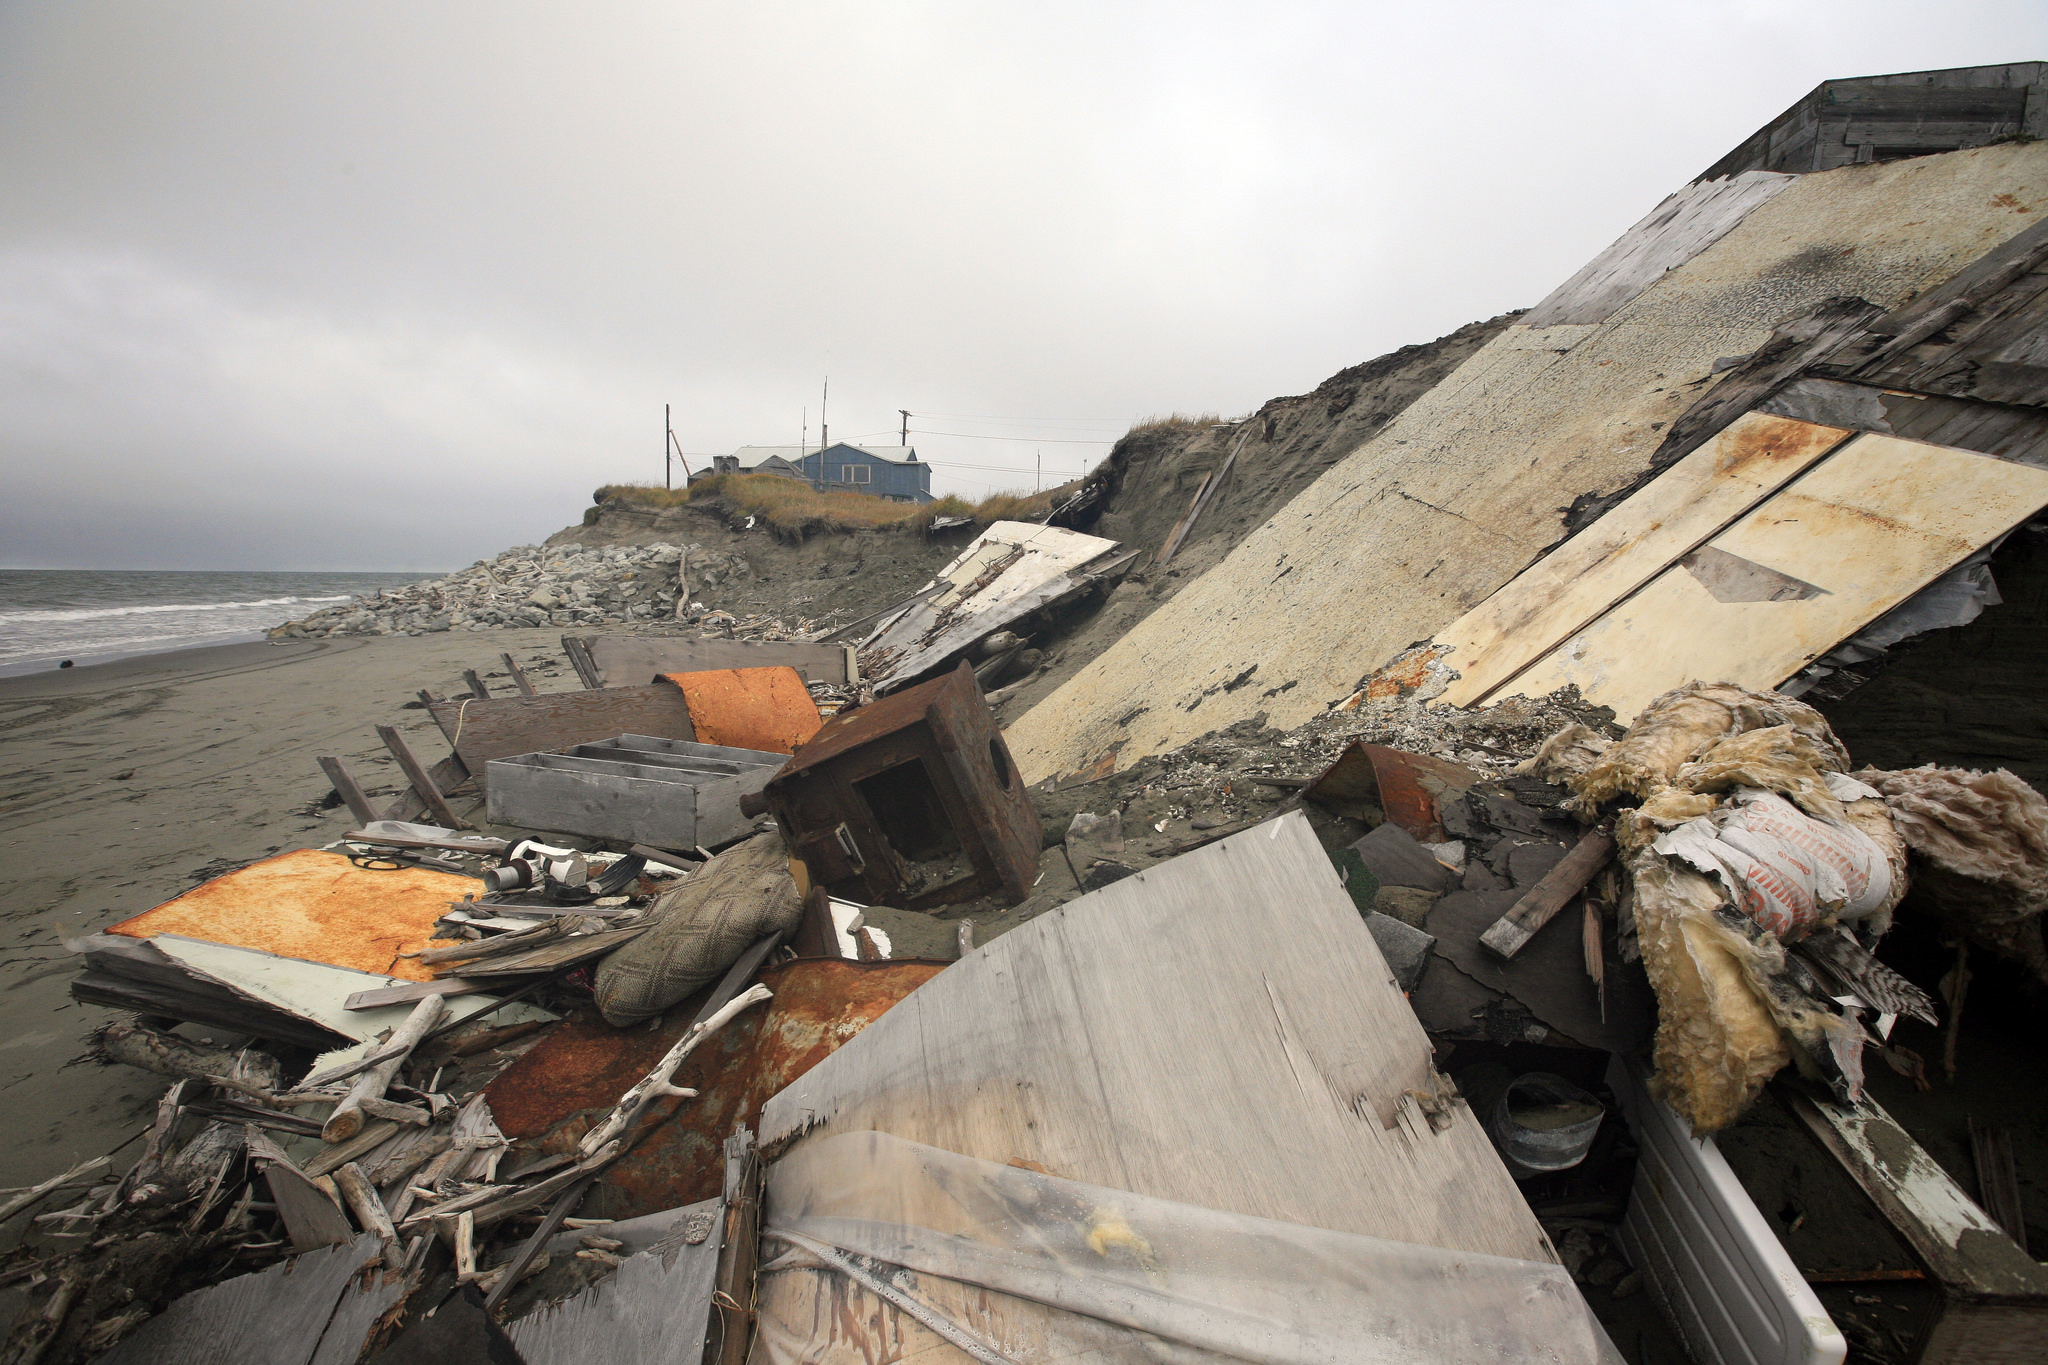 Houses collapsed due to coastal erosion, Shishmaref, Alaska, US